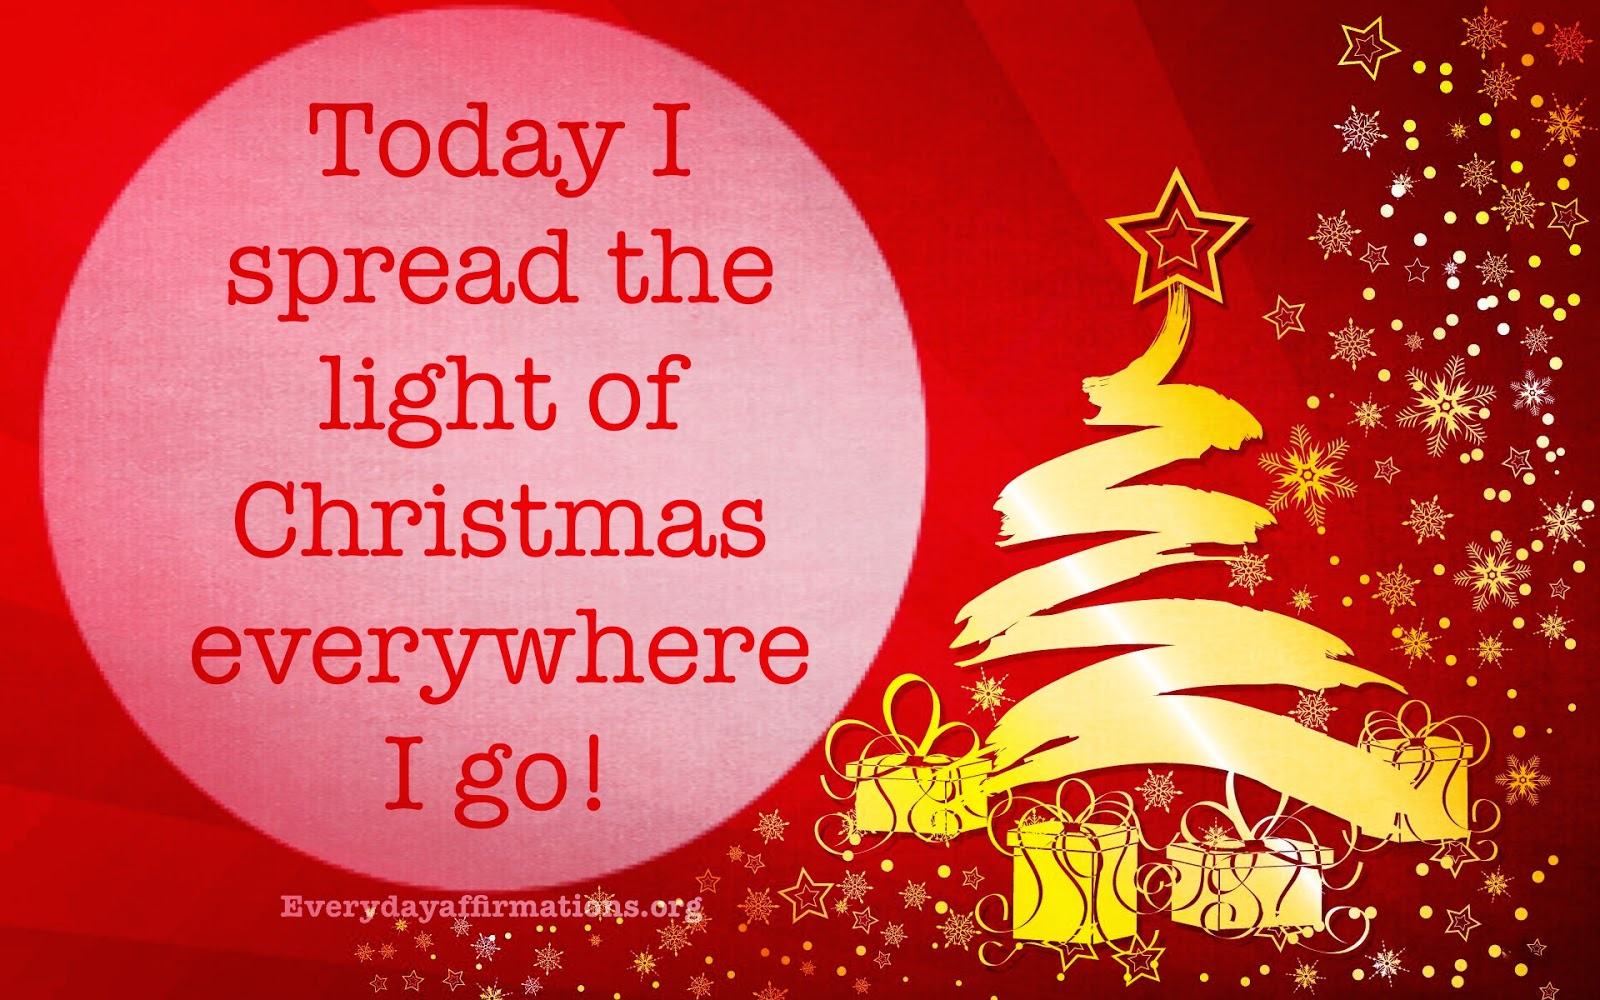 Daily Affirmations, Christmas Affirmations, affirmations for new year